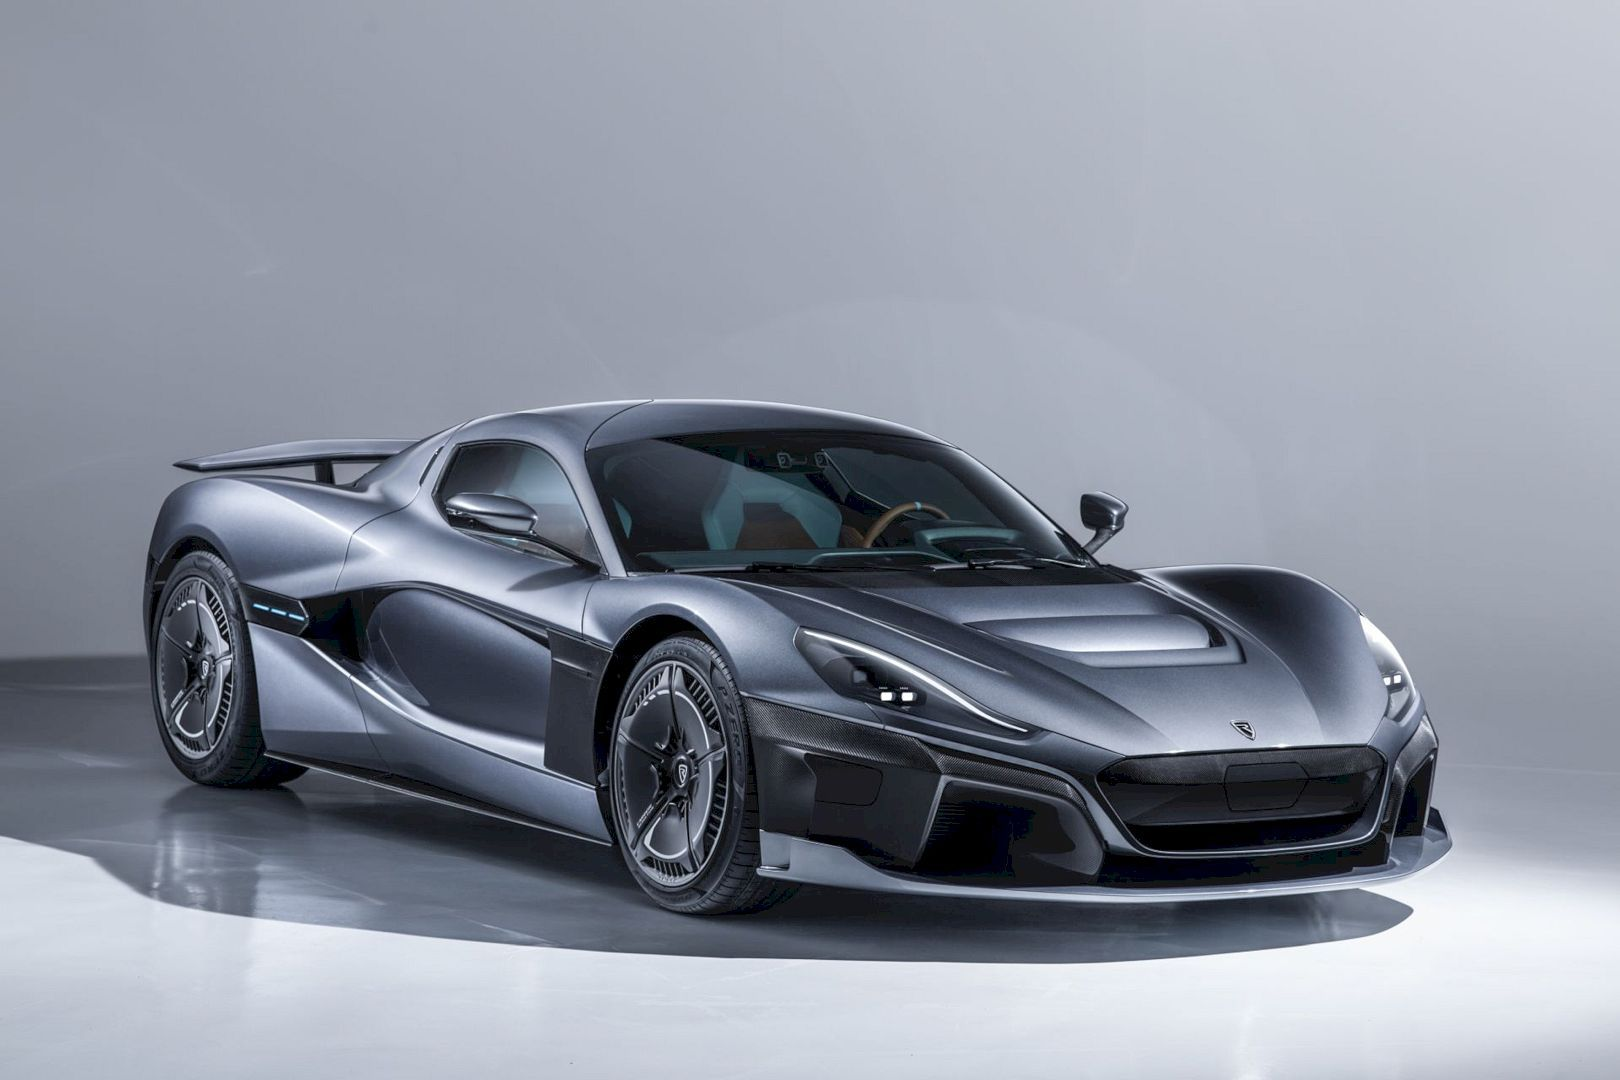 Rimac C Two The Hypercar We Have Been Waiting For Super Cars Sports Cars Geneva Motor Show